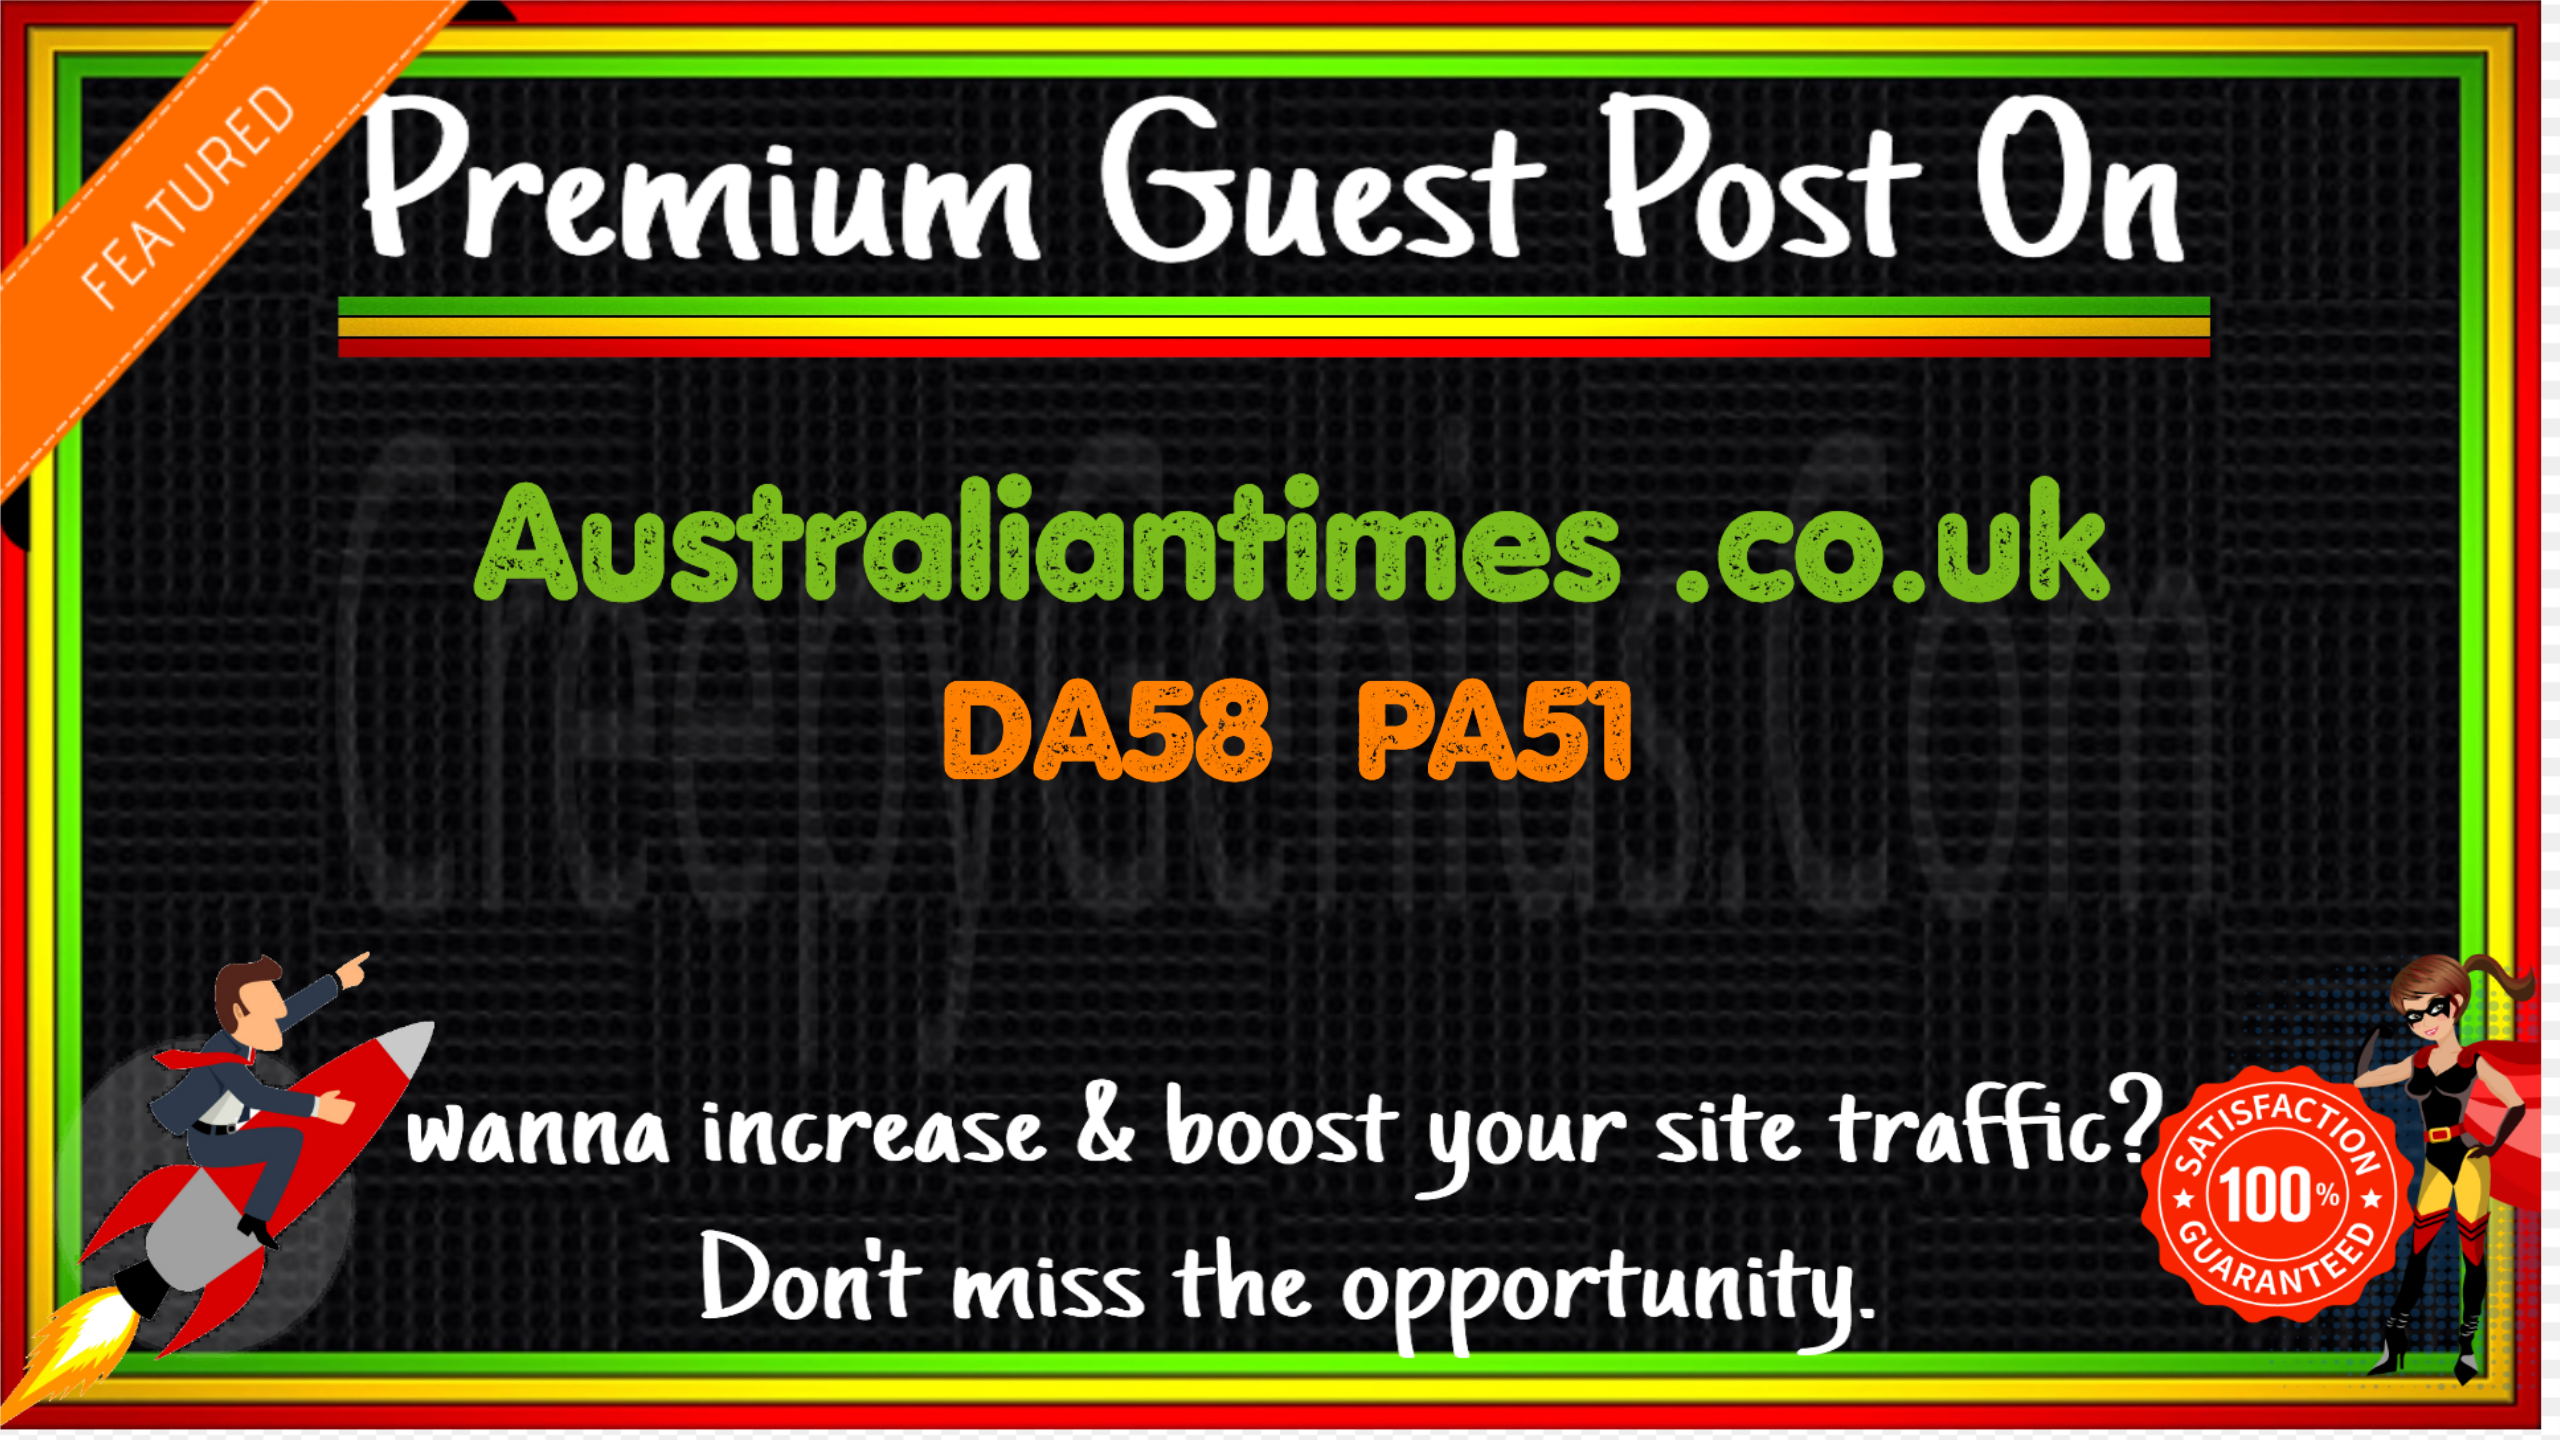 Write & Publish A Guest Post On Australiantimes. co. uk DA58 PA51